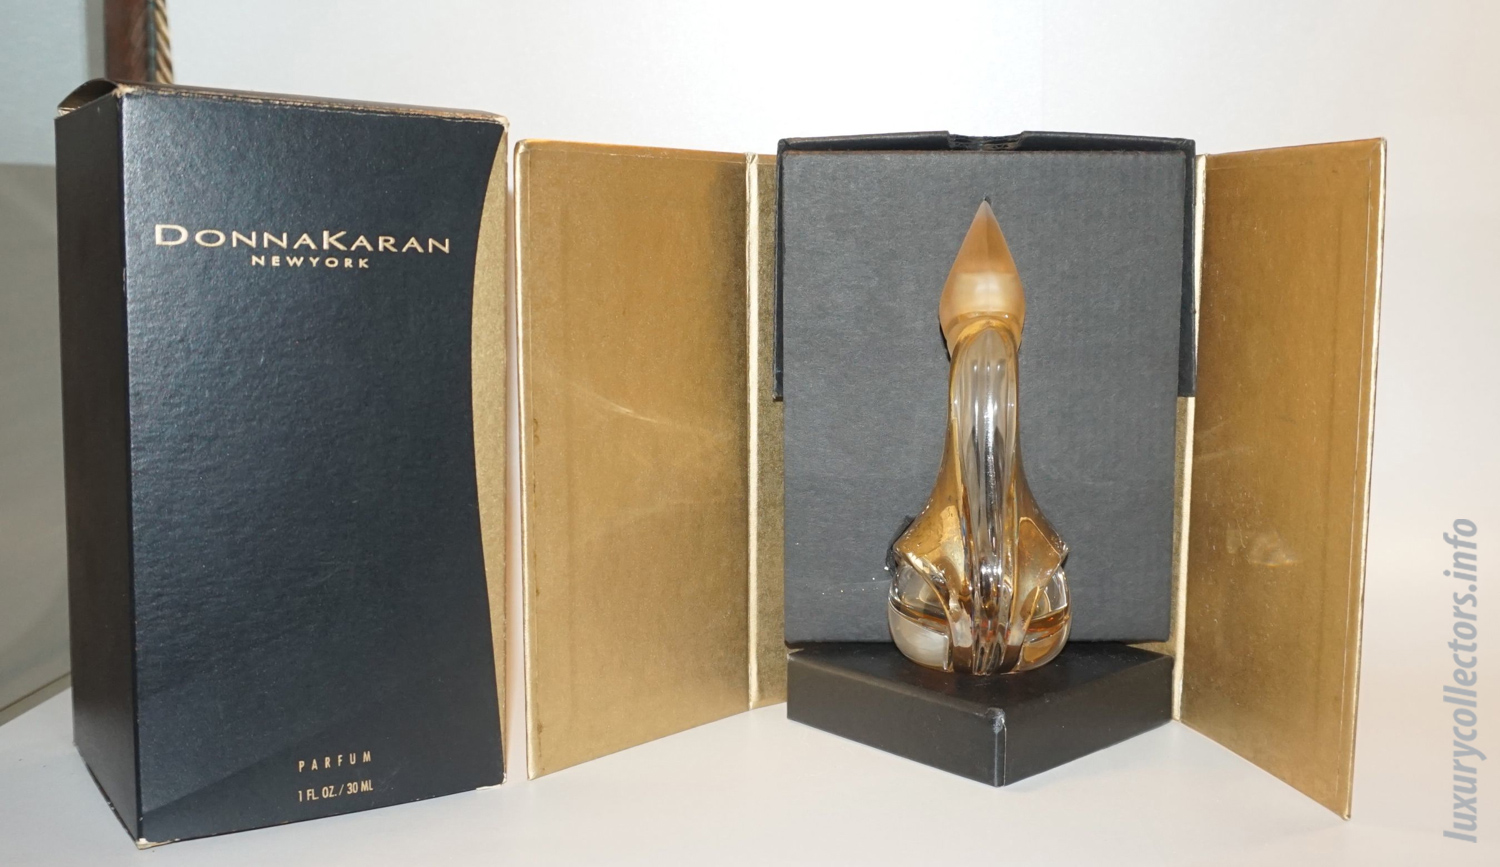 Complete Box Packaging Donna Karan New York Parfum Limited Edition Perfume Bottle Gold Signed Stephan Weiss Numbered